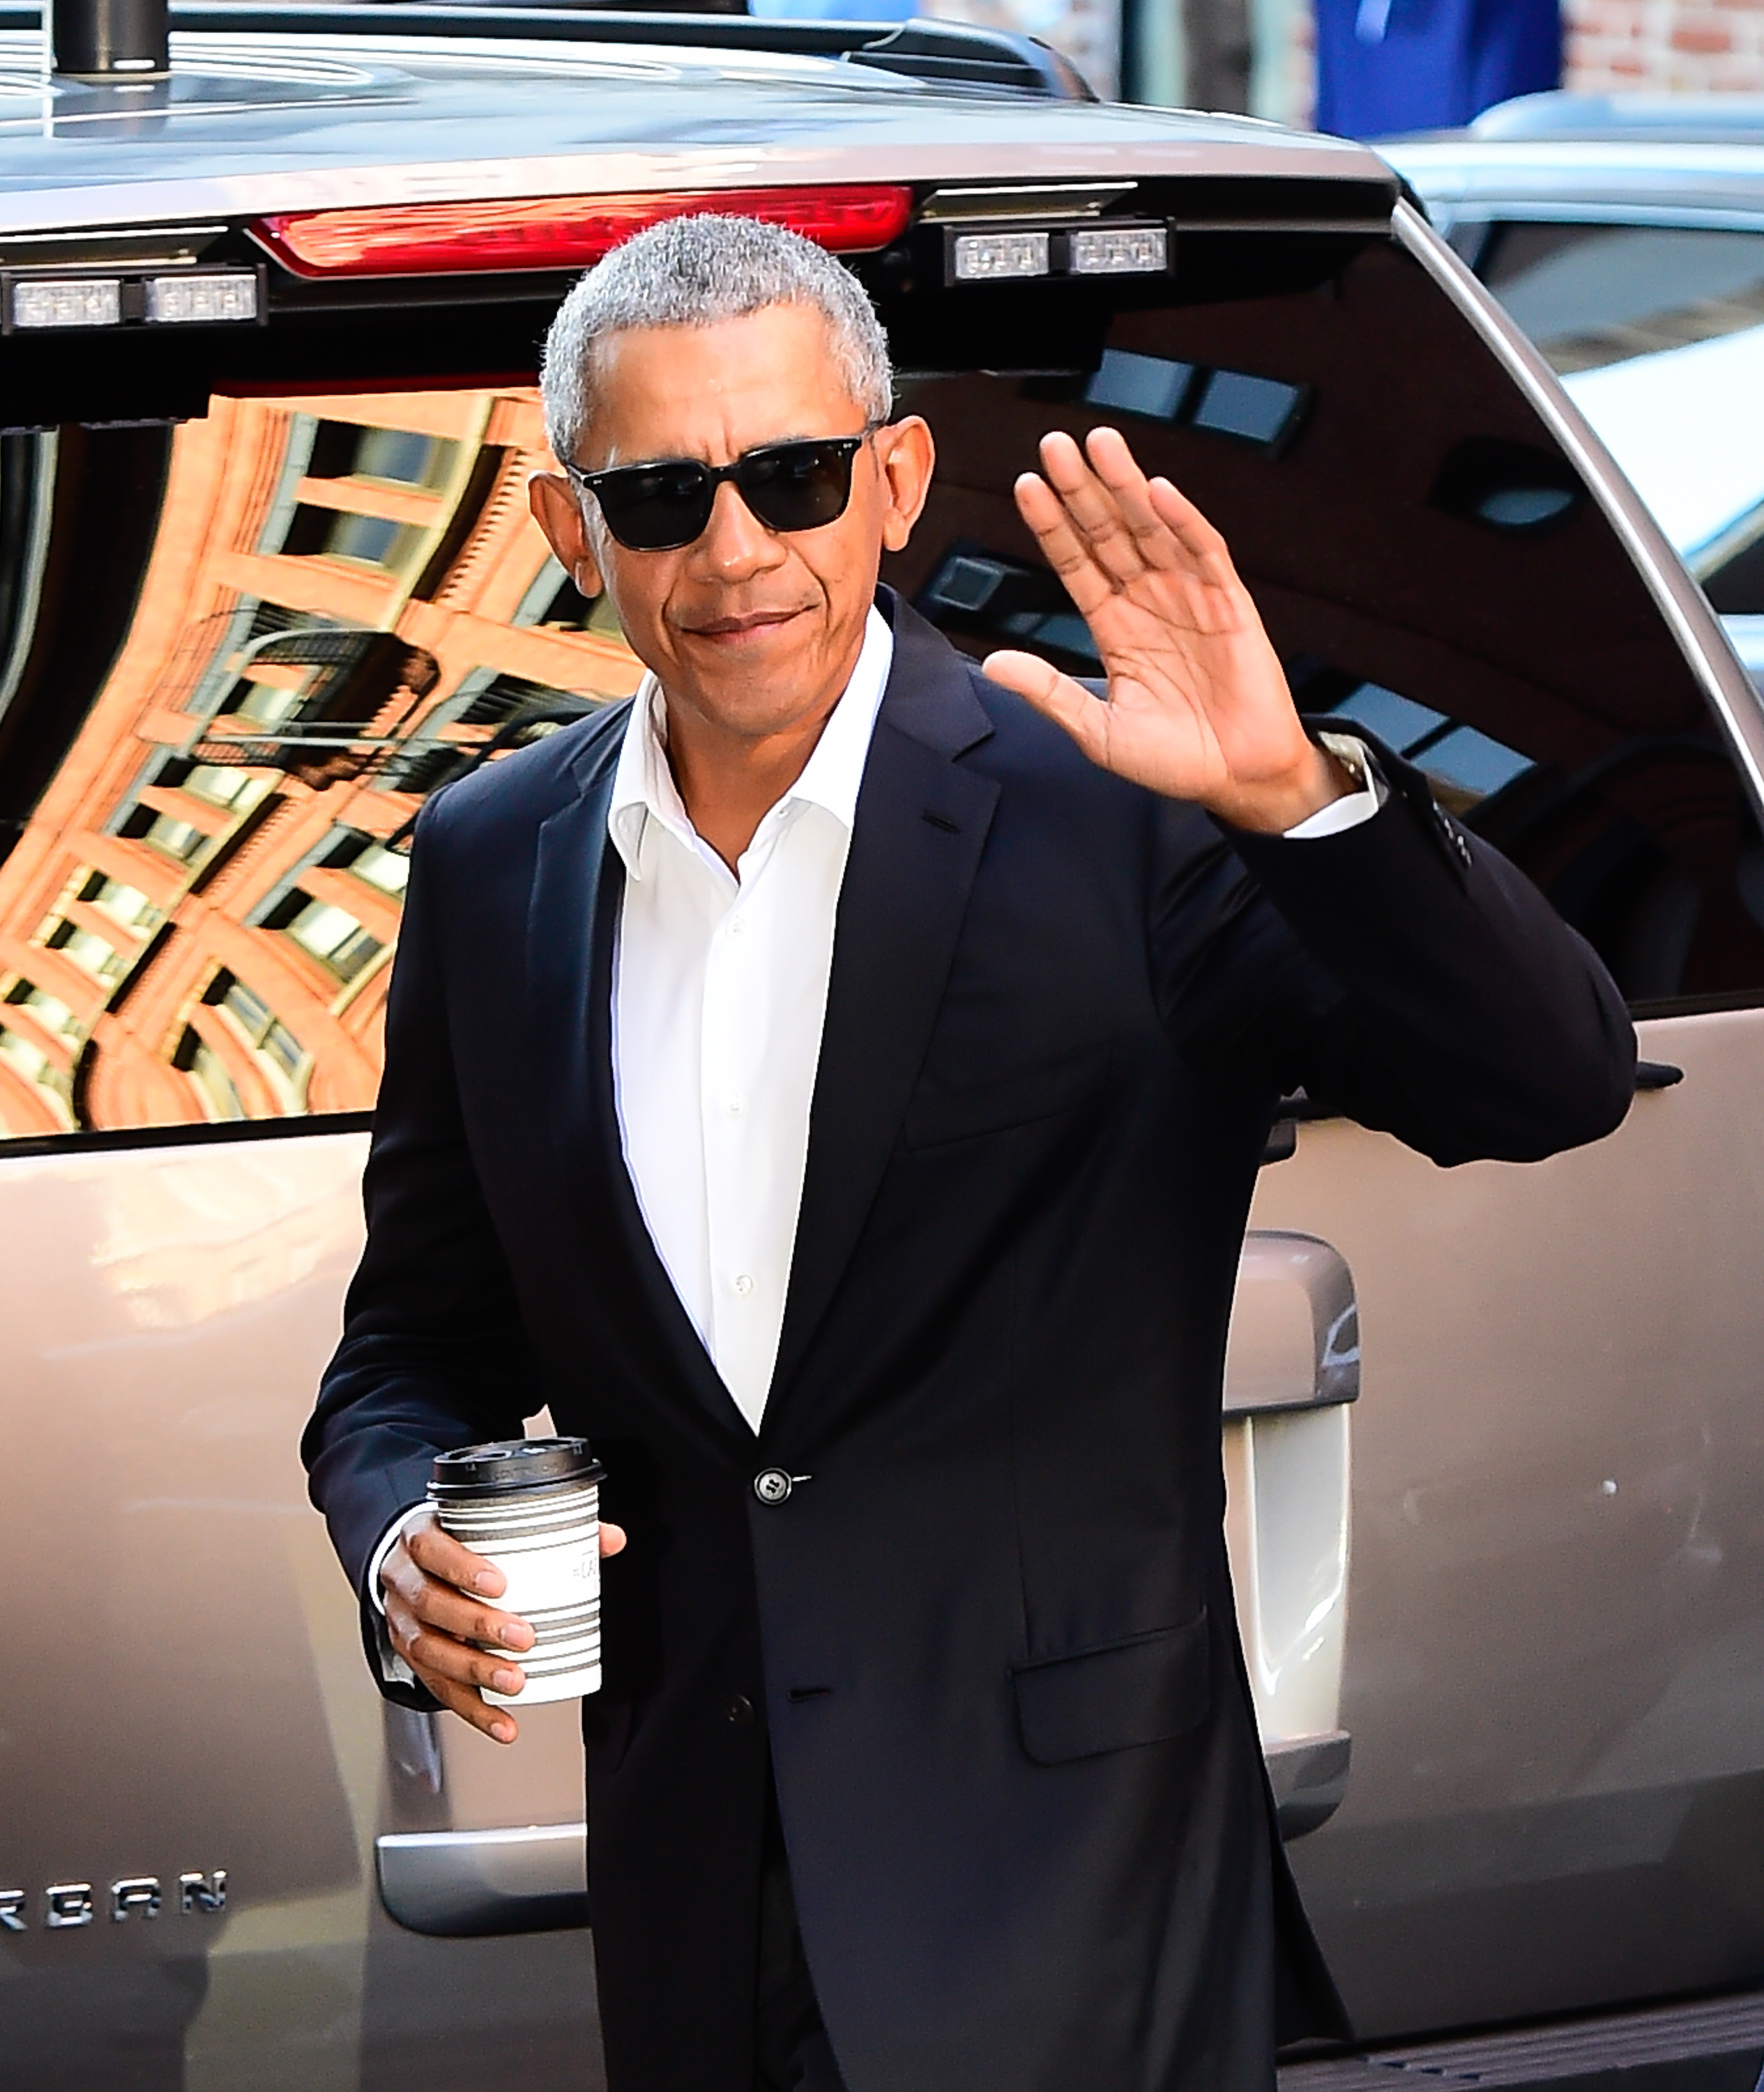 Barack Obama, wearing black sunglasses and a black suit, waves